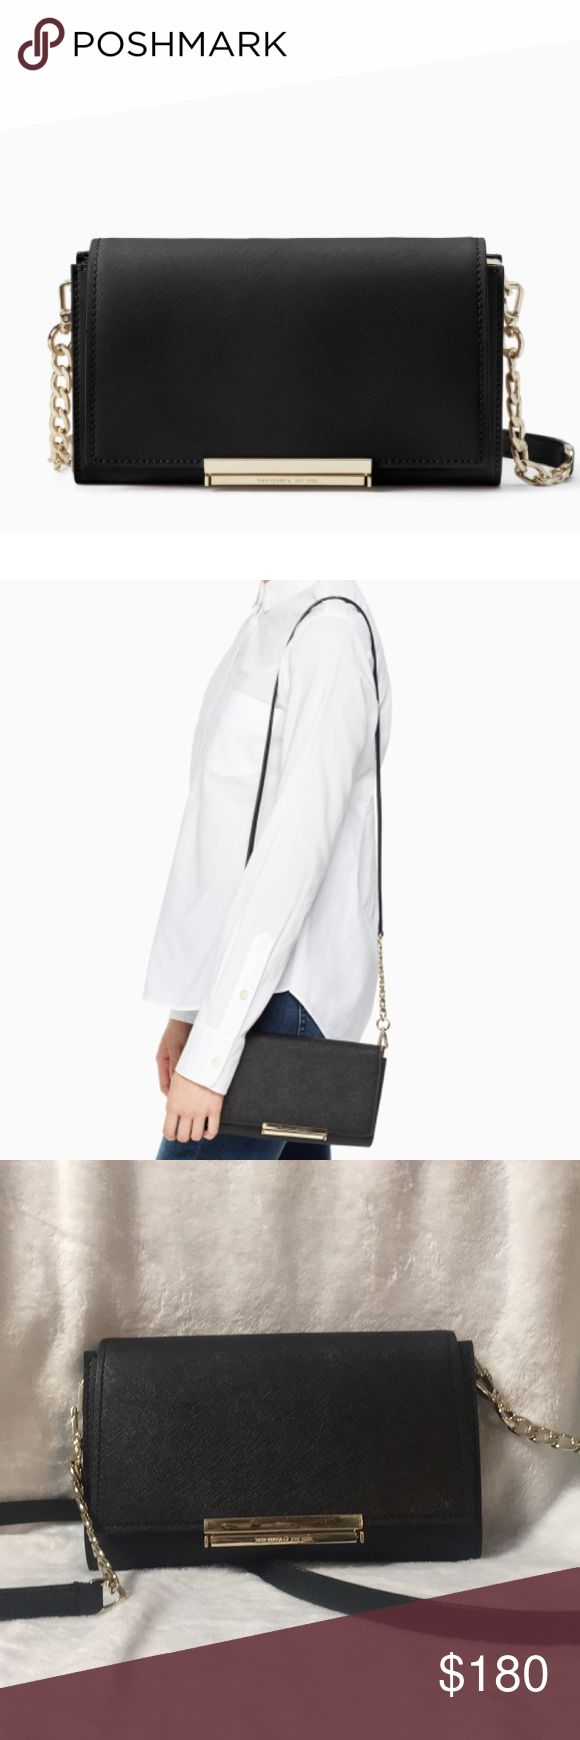 Kate Spade Make It Mine Camilla Black Crossbody This crossbody was purchased in August 2017, the one clasp appears to have ripped a bit, but isn't noticeable while the purse is closed. Has full wallet inside. Minor scratching on the clasp and minor wear overall. Retails currently for $258 kate spade Bags Crossbody Bags